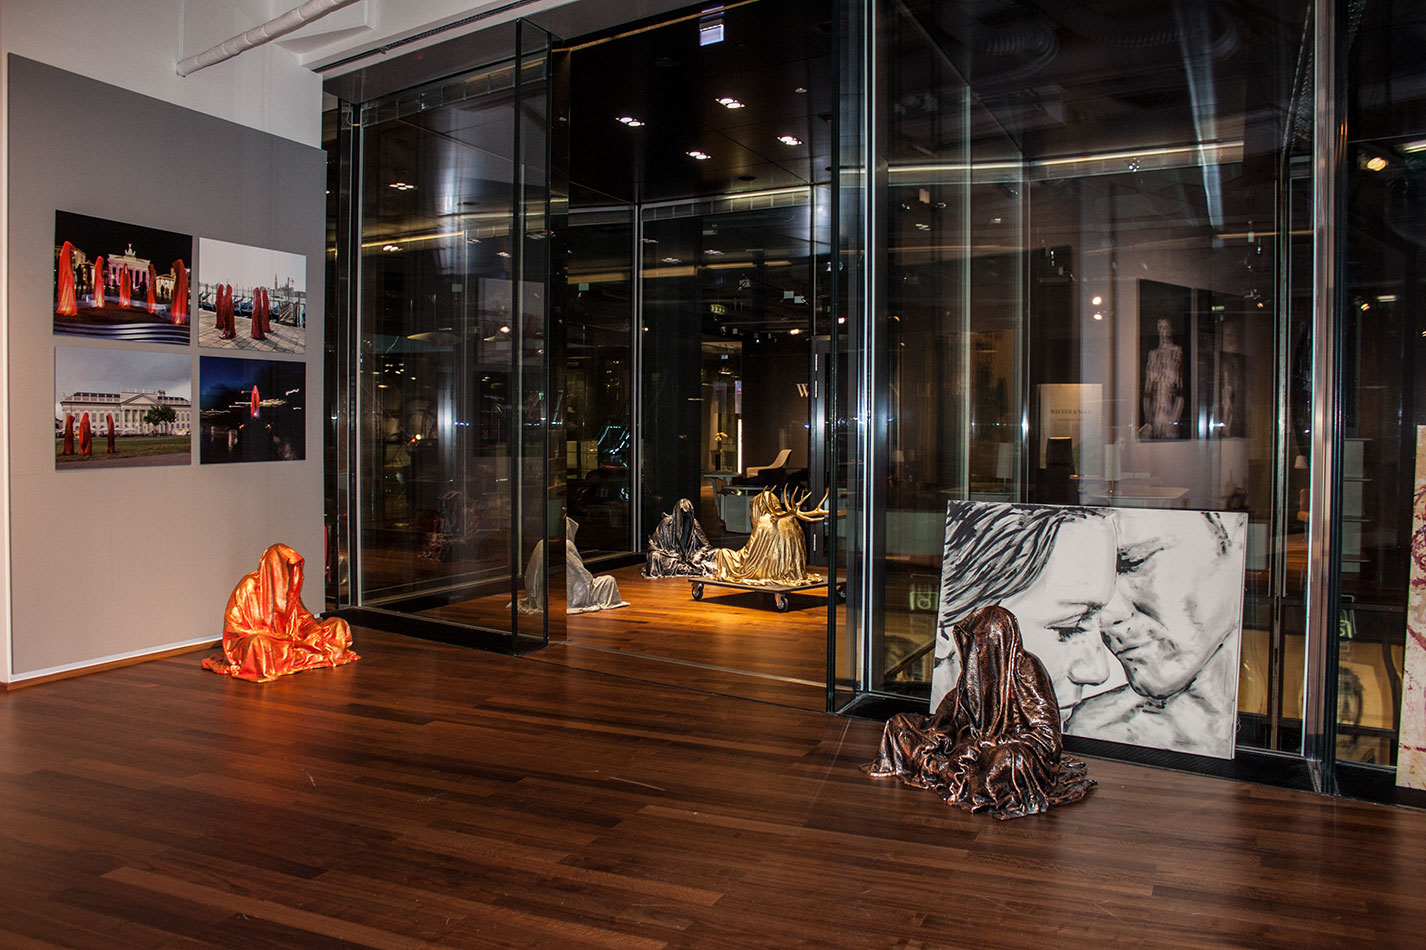 stilwerk-wien-designtower-vienna-show-guardians-of-time-waechter-der-zeit-manfred-kielnhofer-modern-contemporary-fine-art-design-sculpture-3d-arts-3936